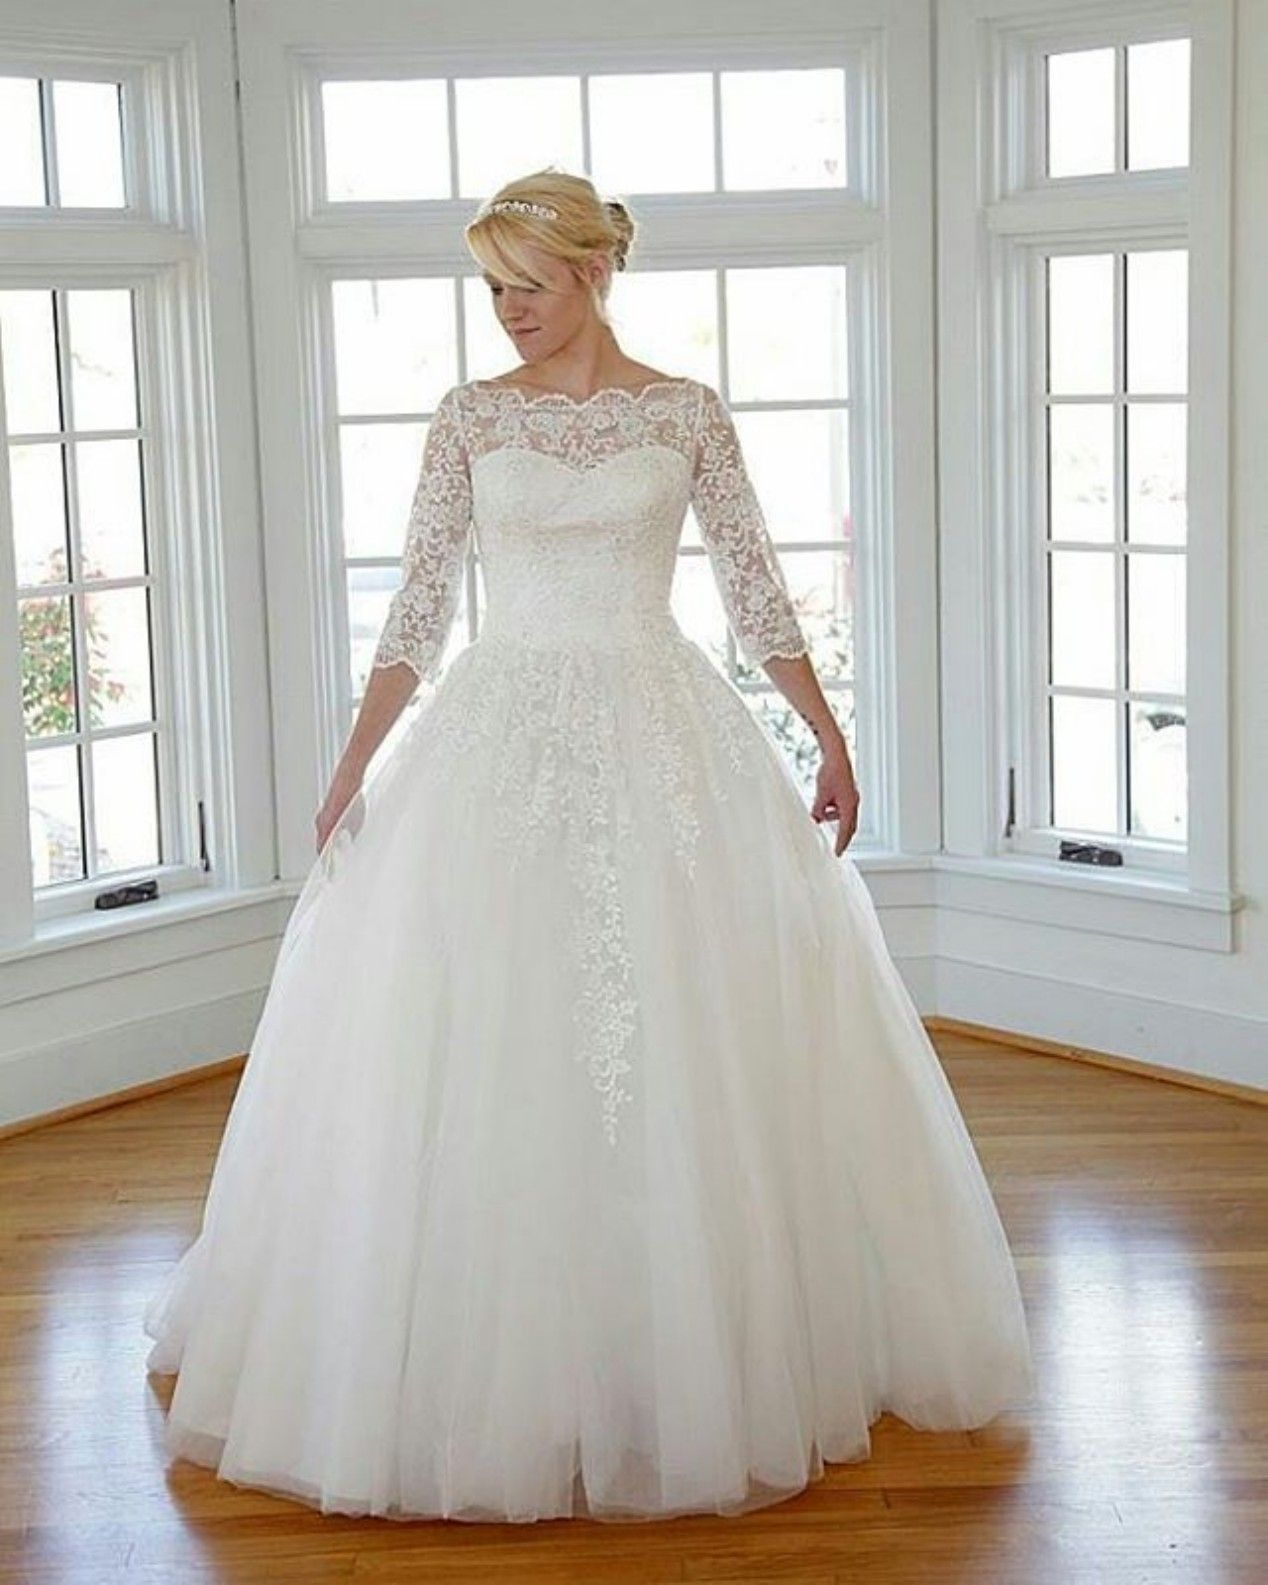 Awesome 55 Breathtaking Disney Princess Wedding Dress To Fullfill Your Fantasy